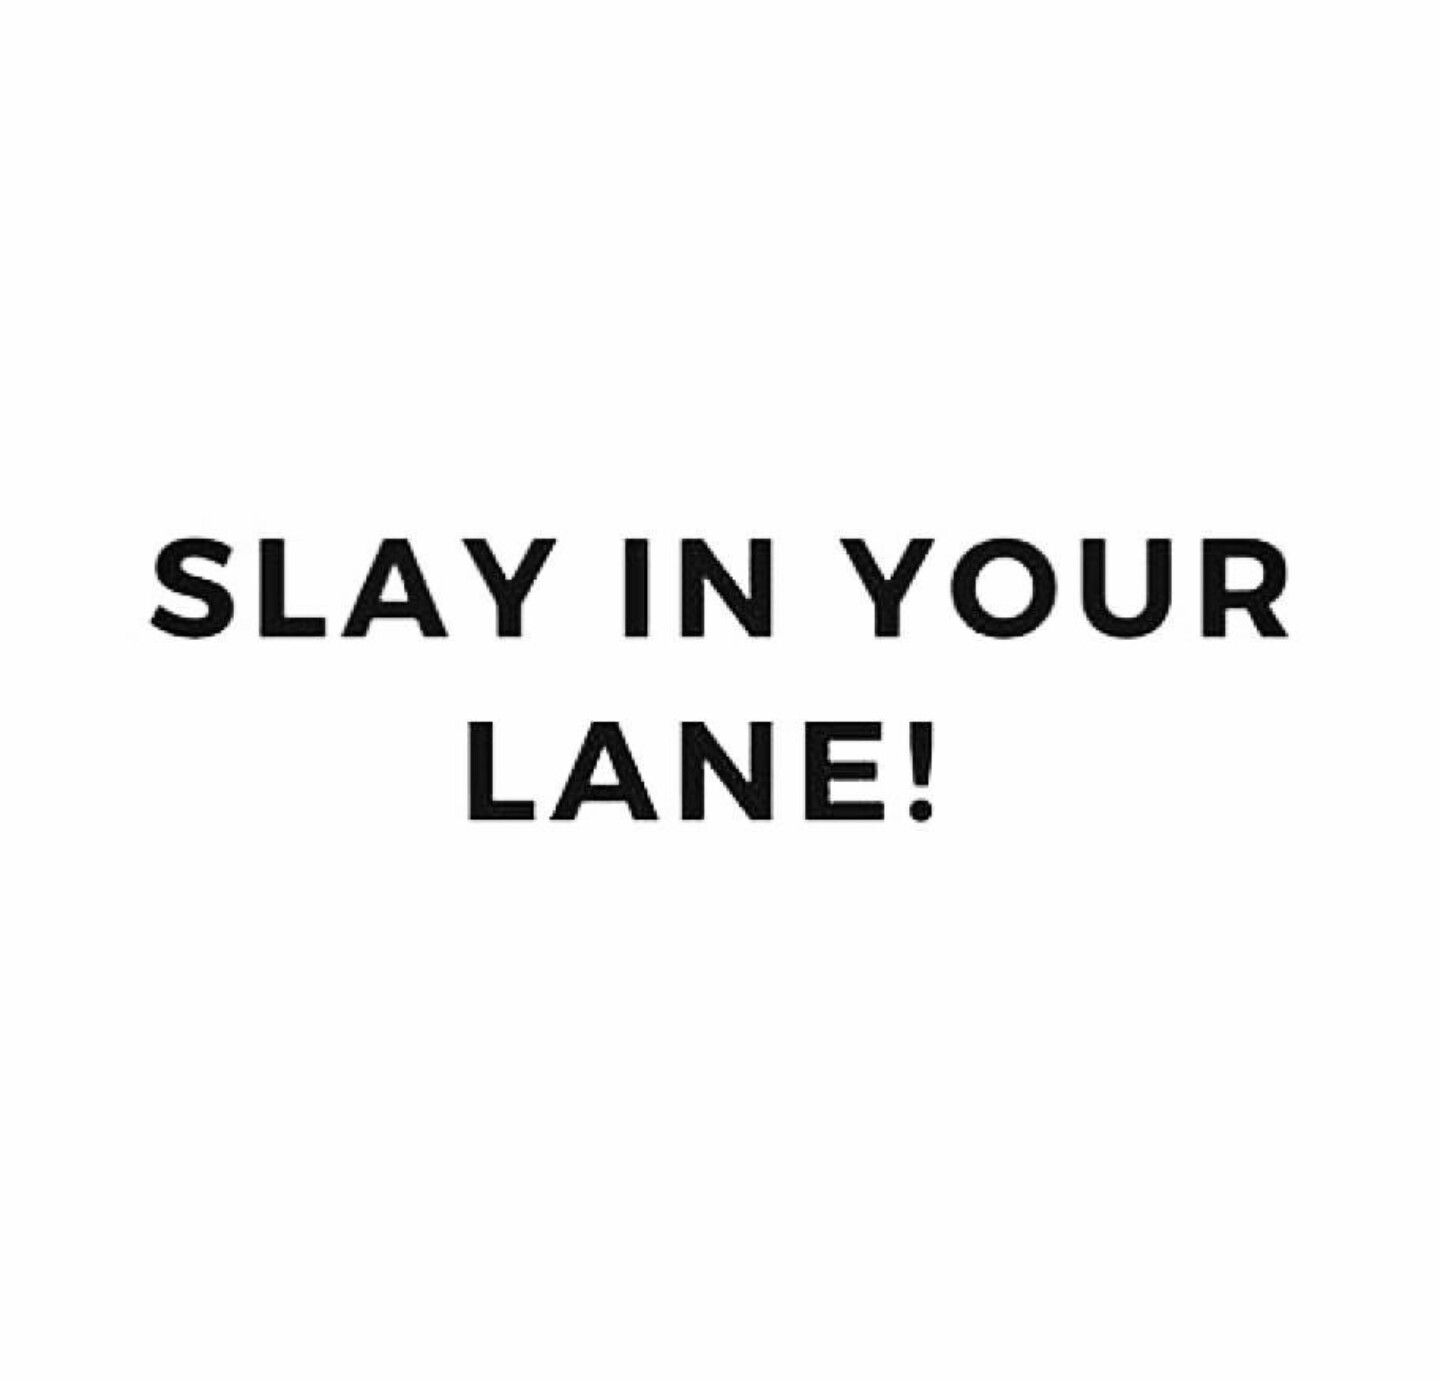 Slay In Your Lane Empowerment Quotes Fierce Quotes